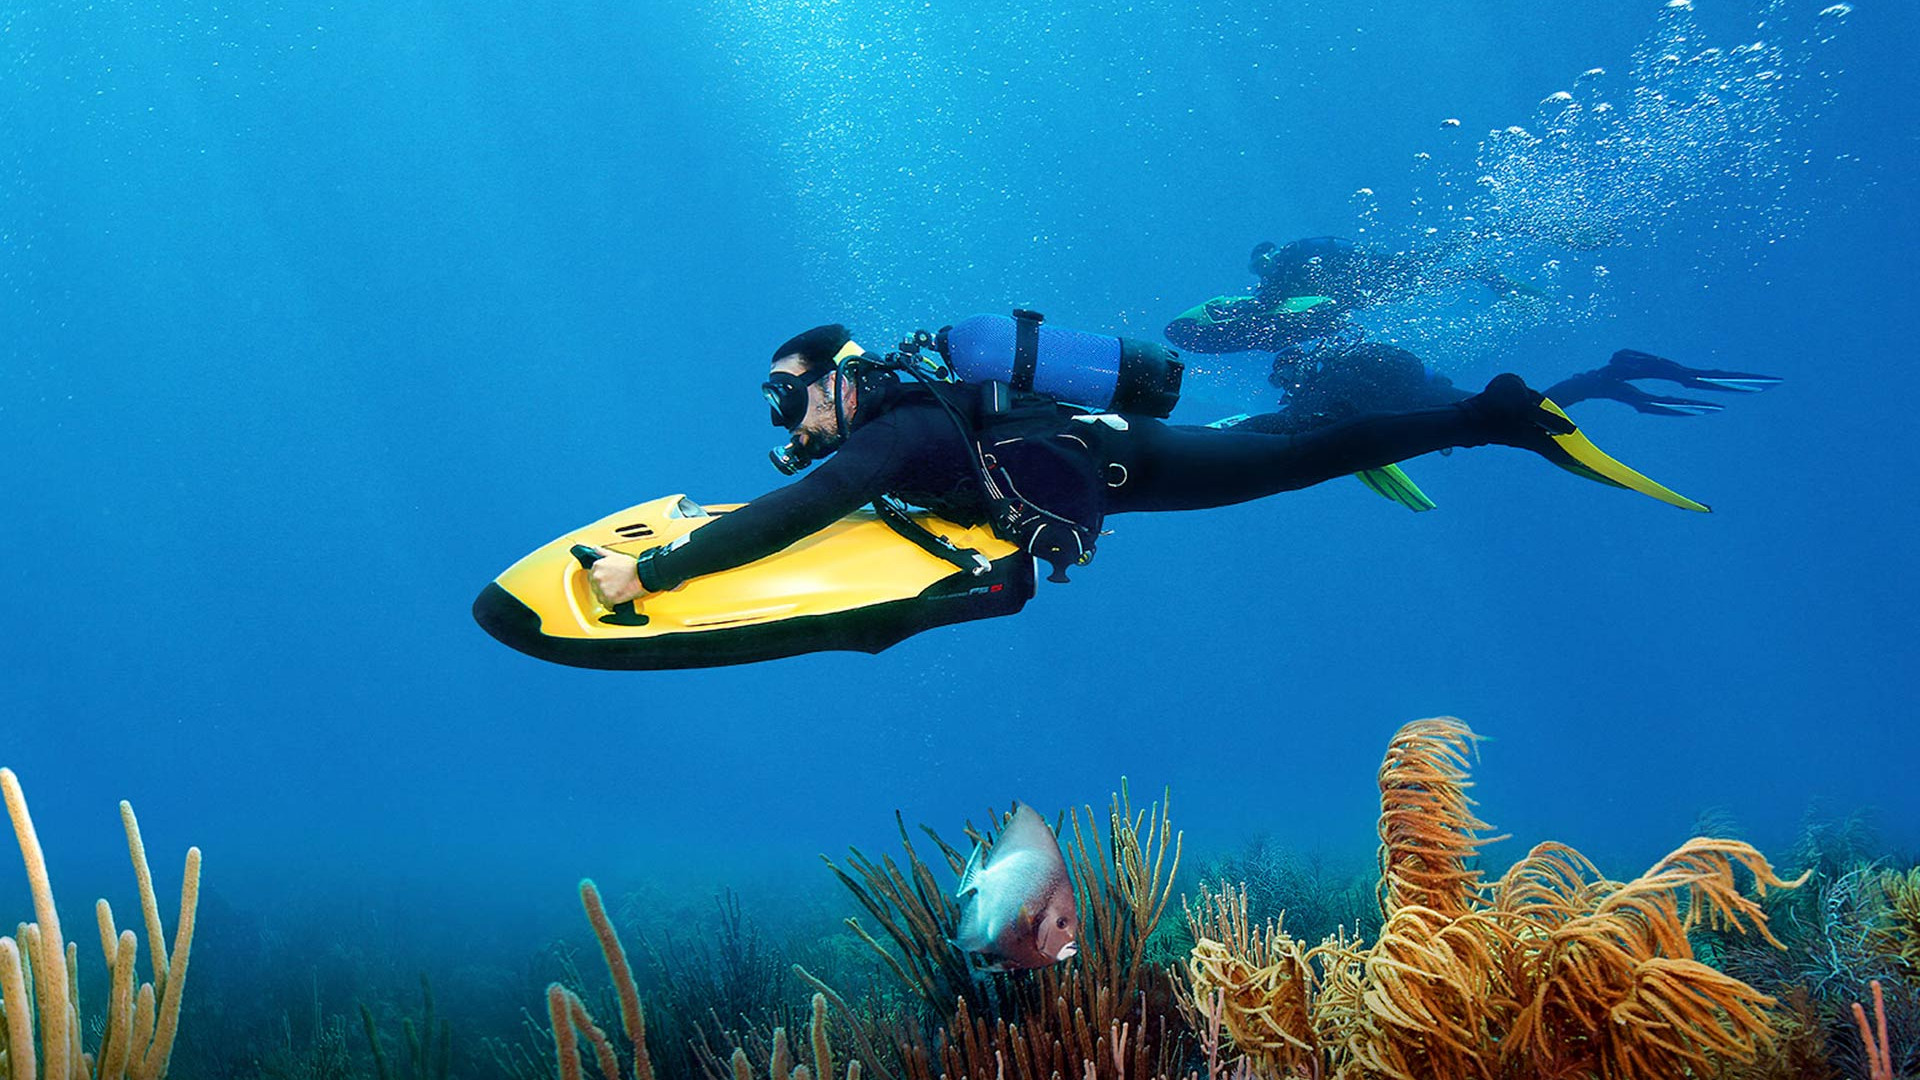 SEABOB-diving-under-water.jpg